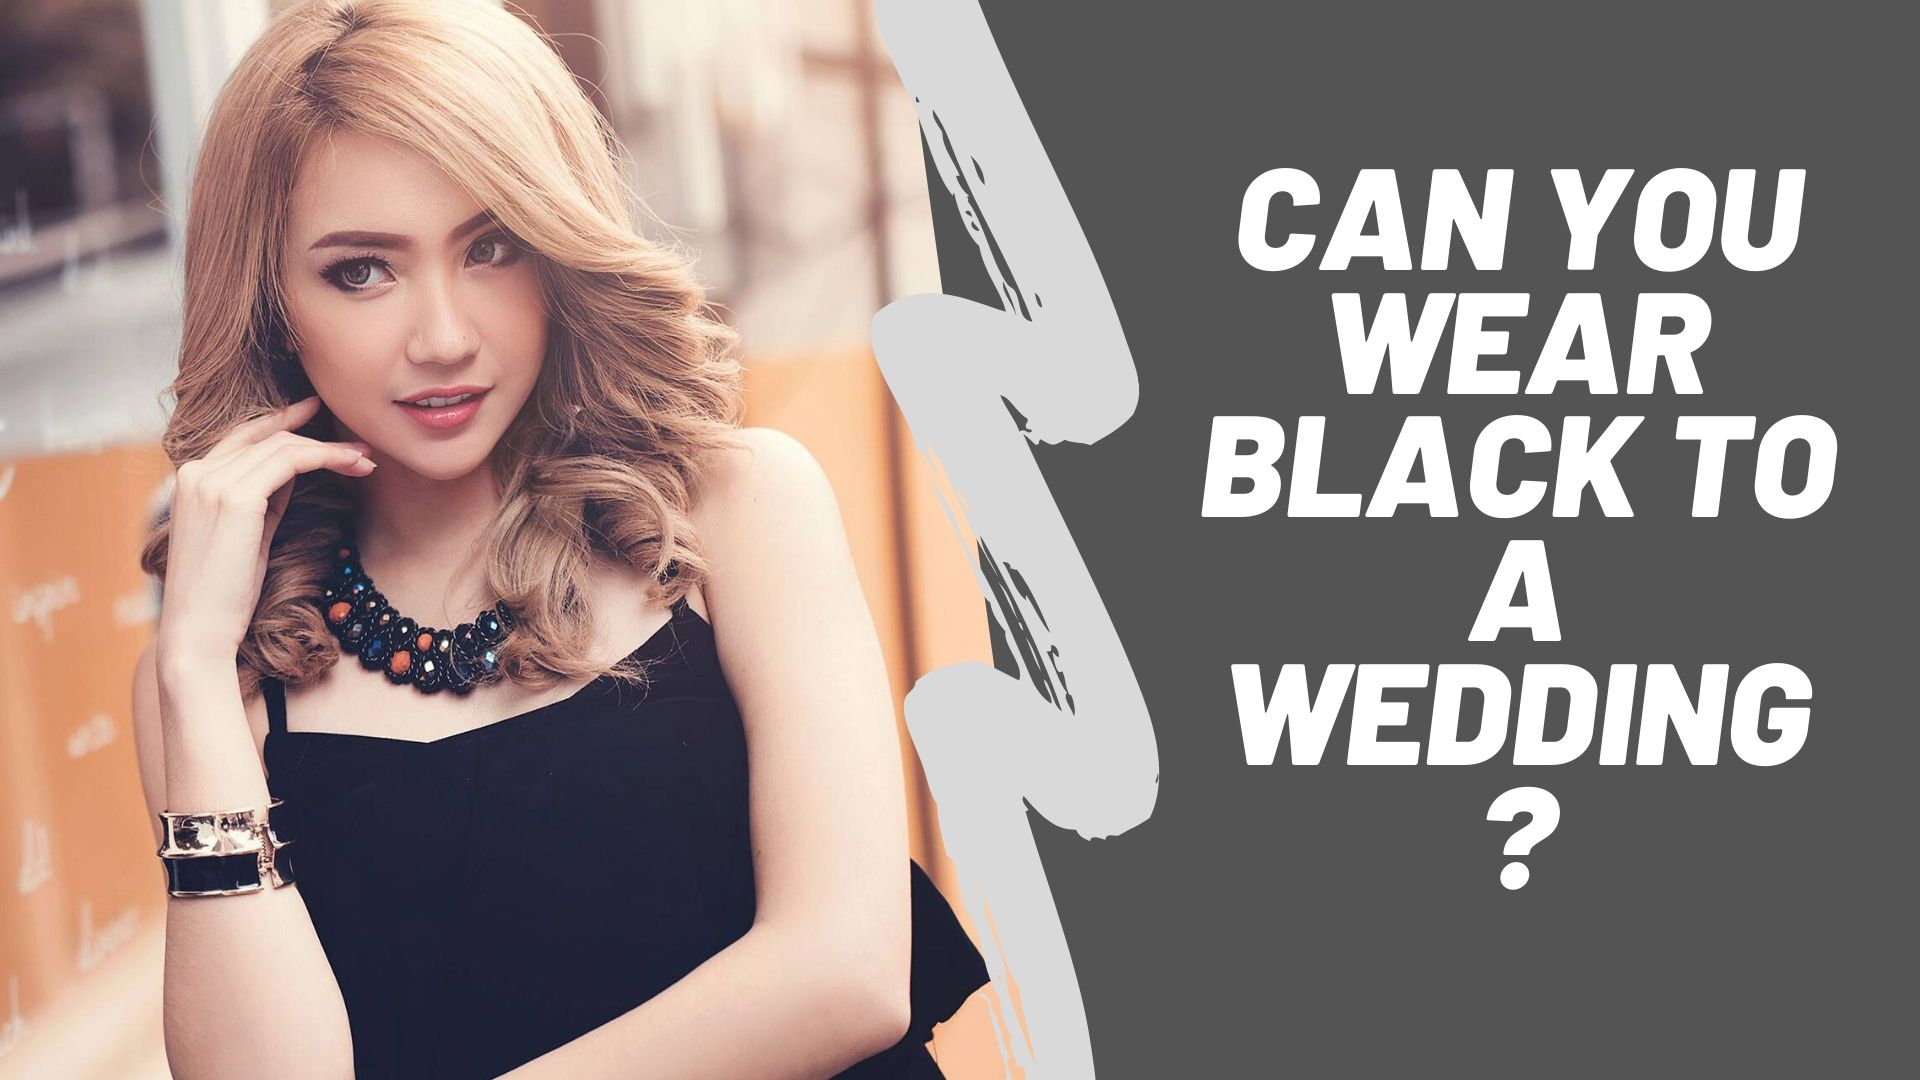 Can You Wear Black to a Wedding?